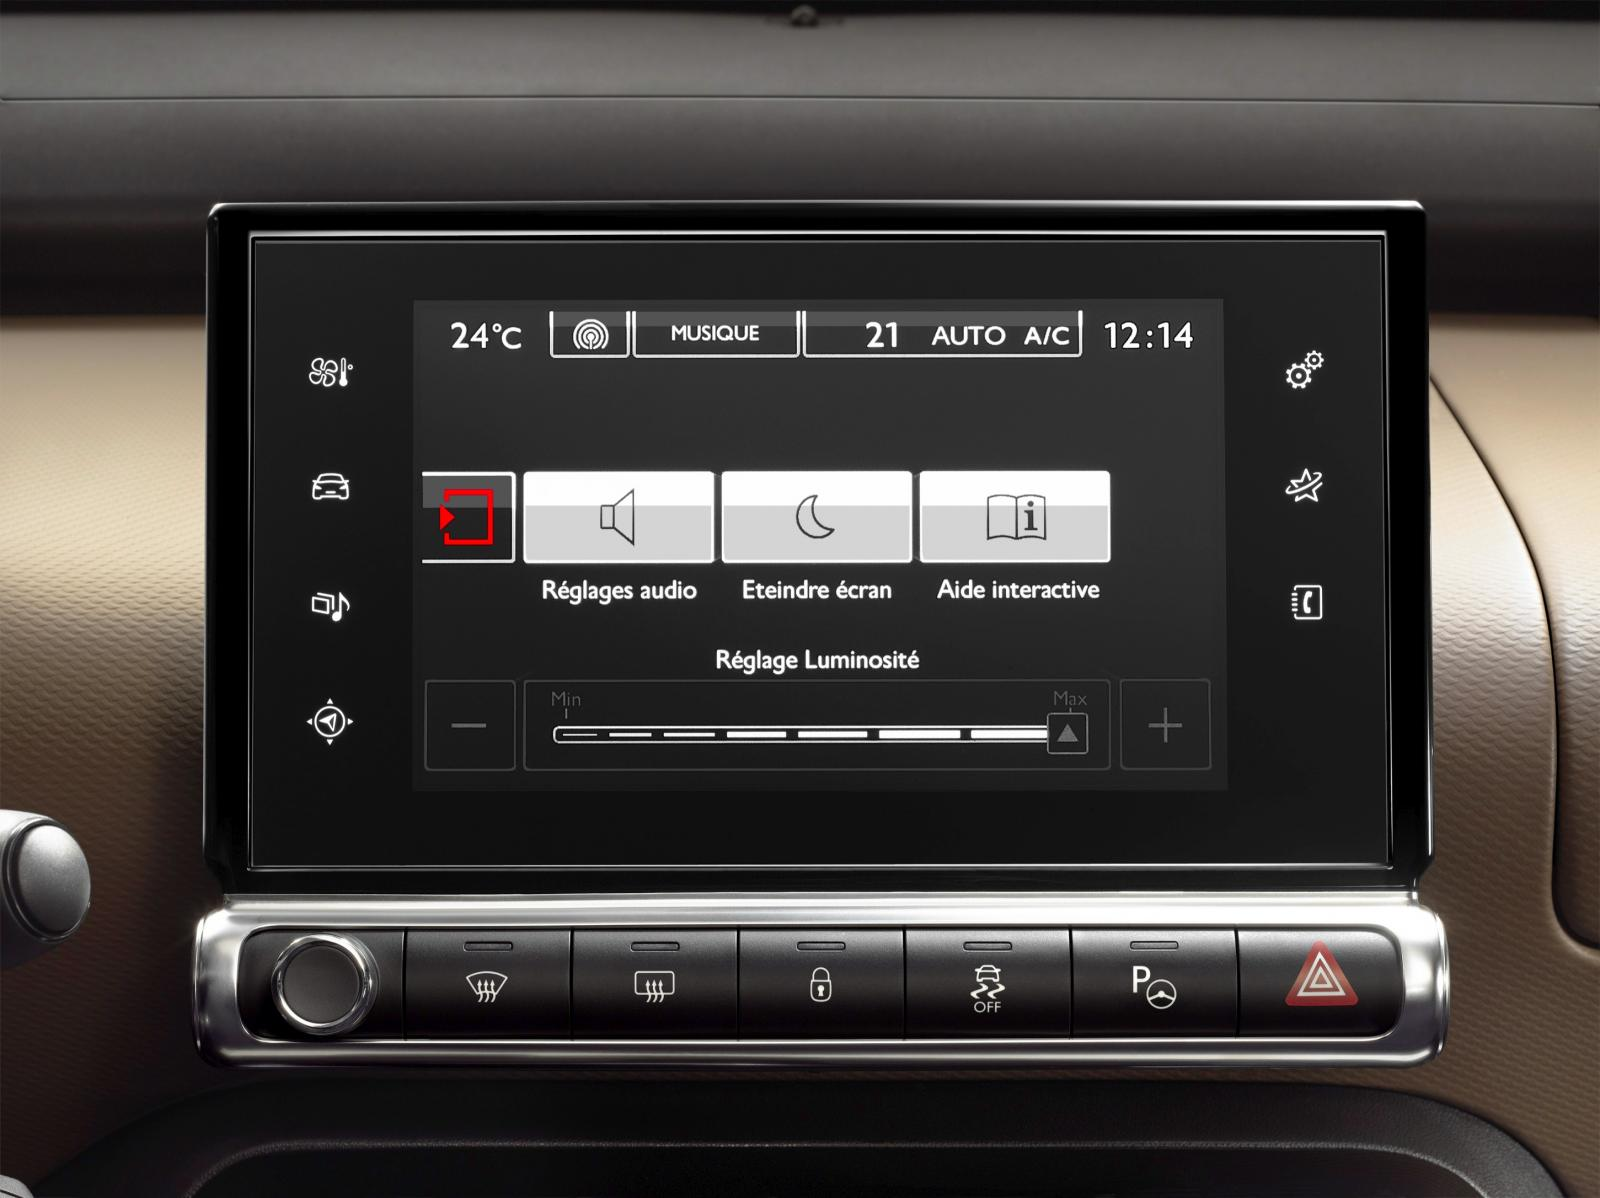 C4 Cactus Shine edition 2014 7'' Touchscreen